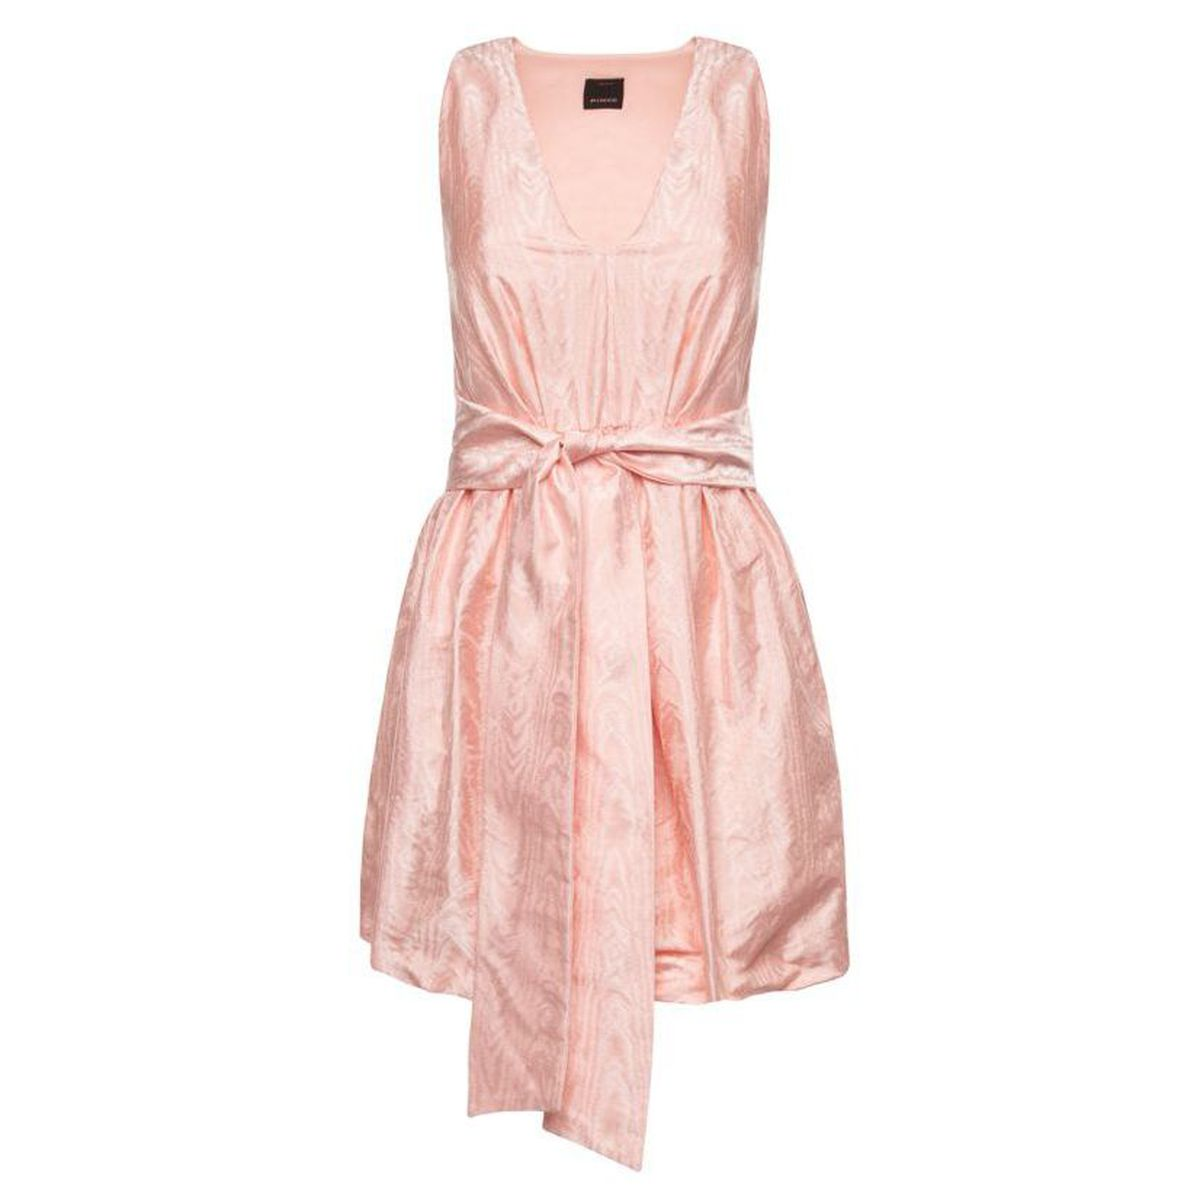 Horace dress Pink Pinko